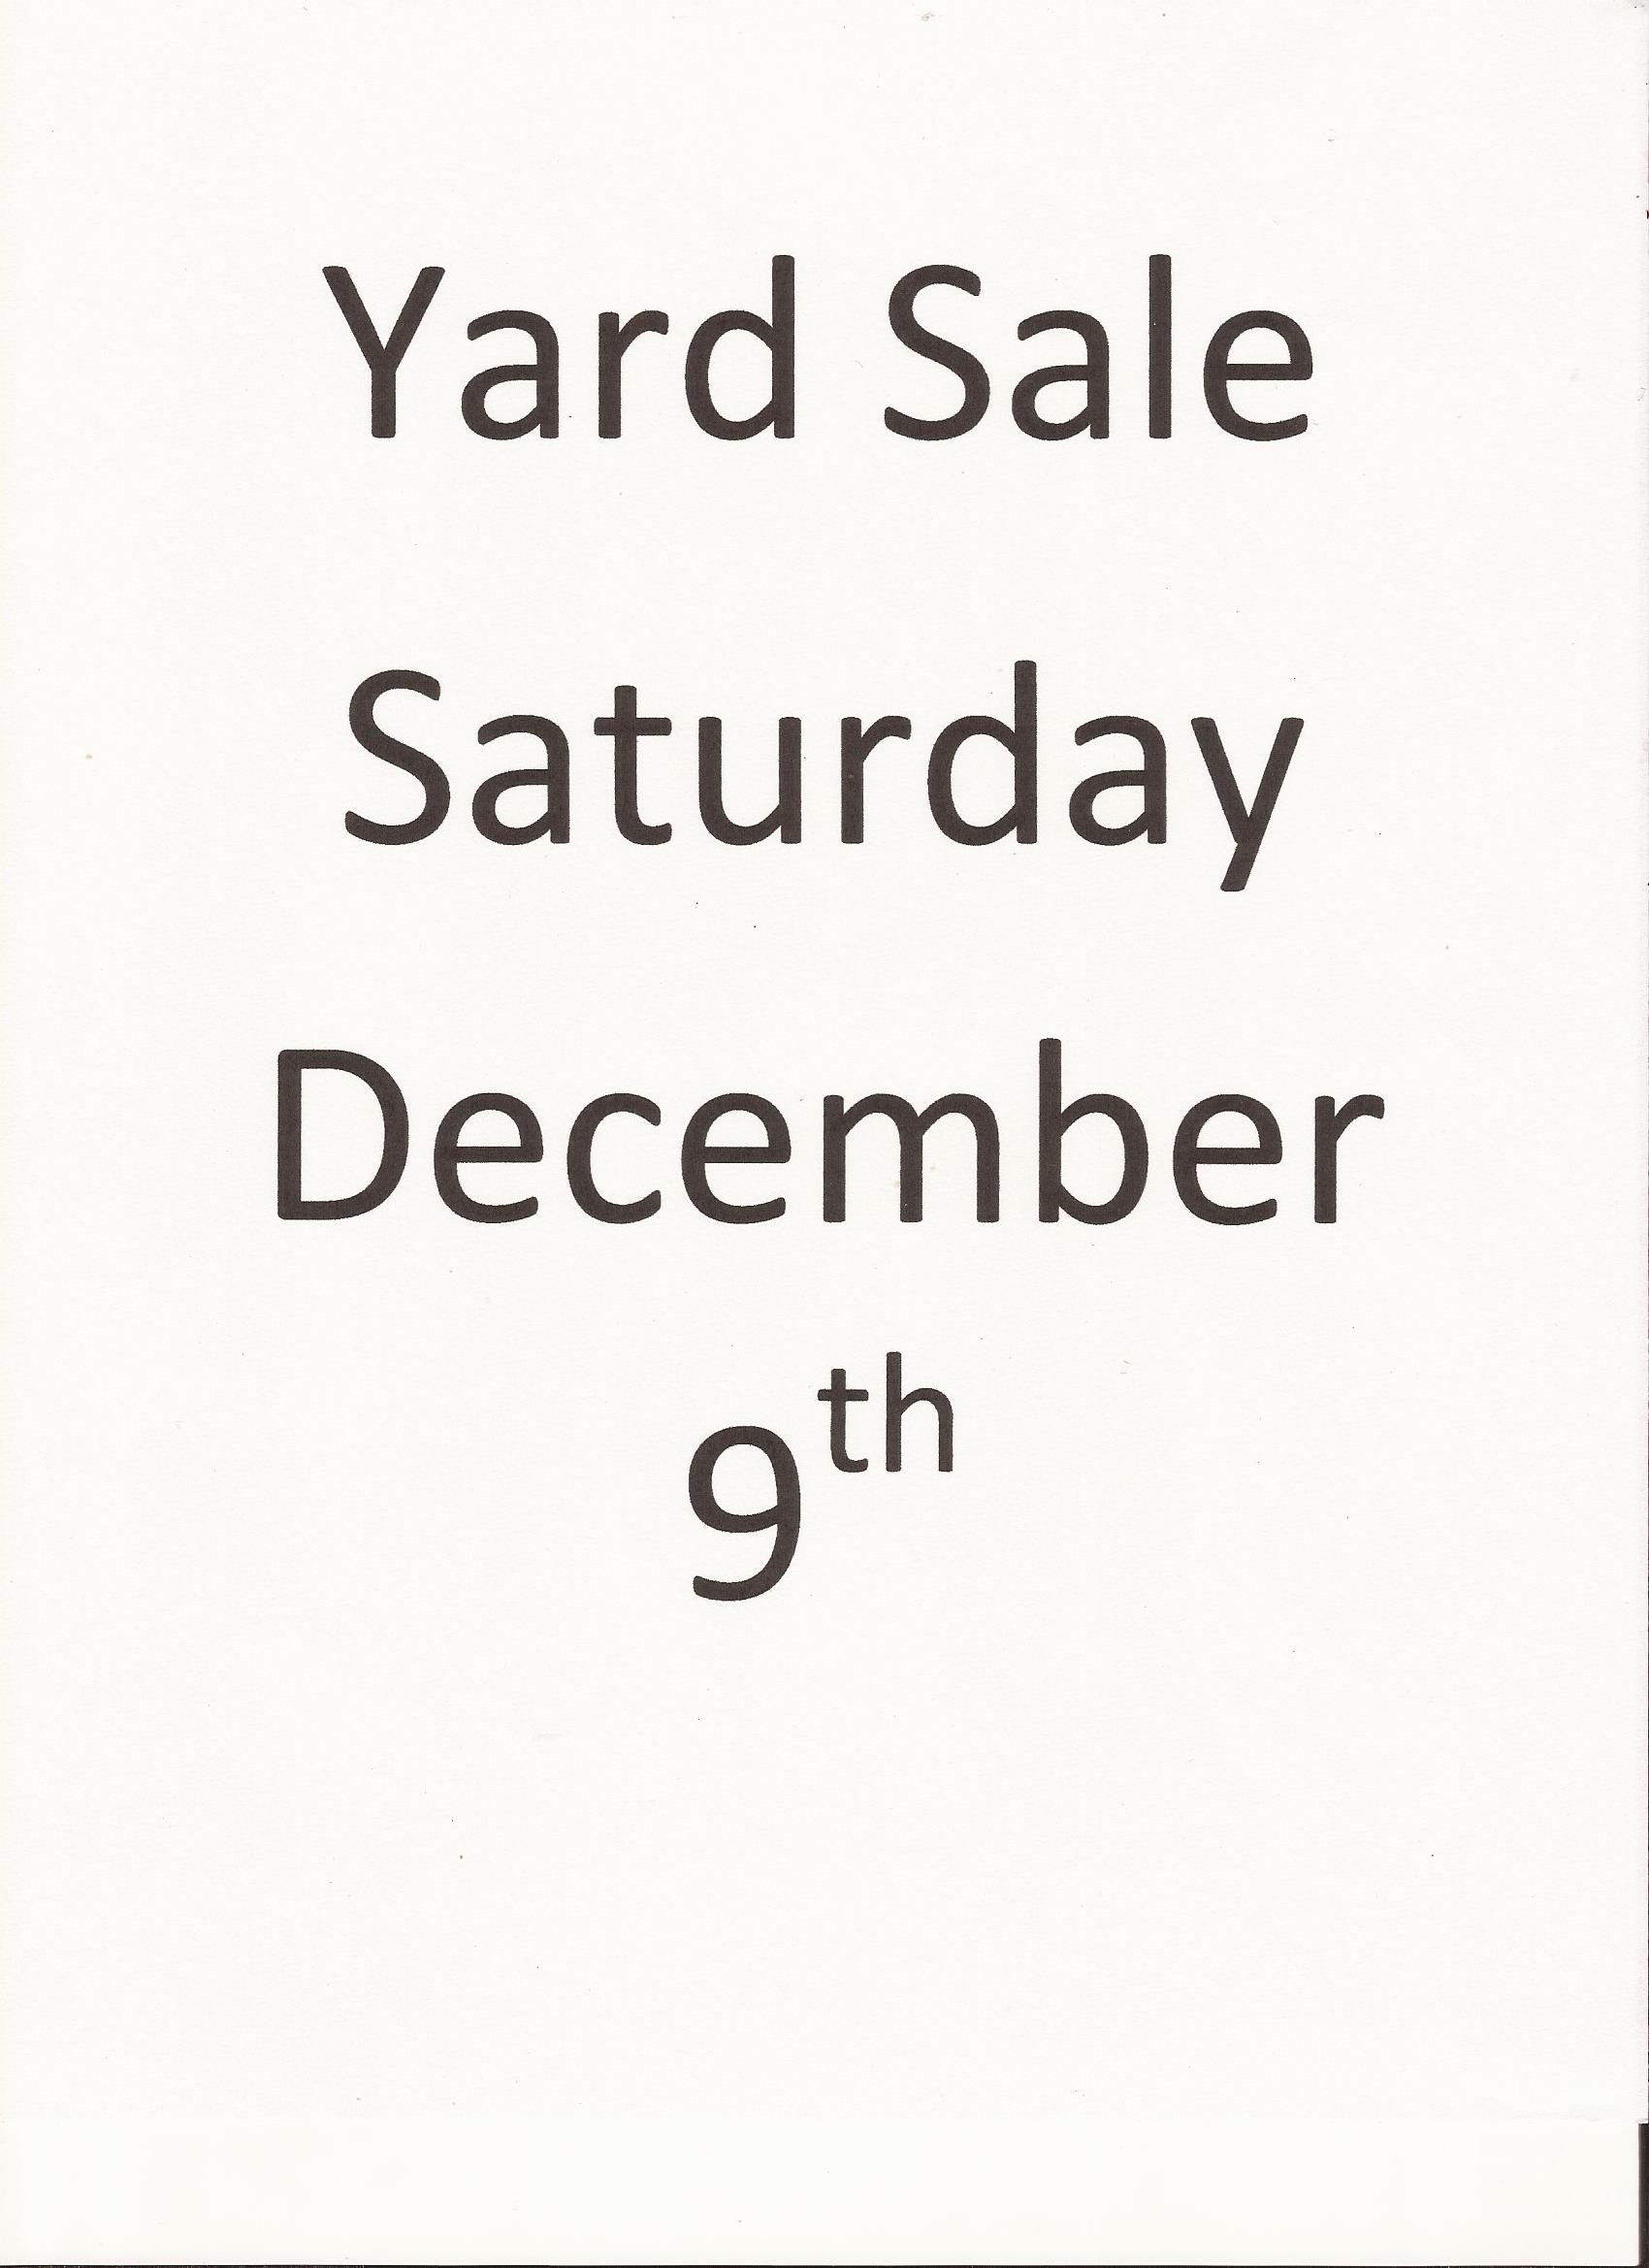 Scan of part of the Yard sale sign I made